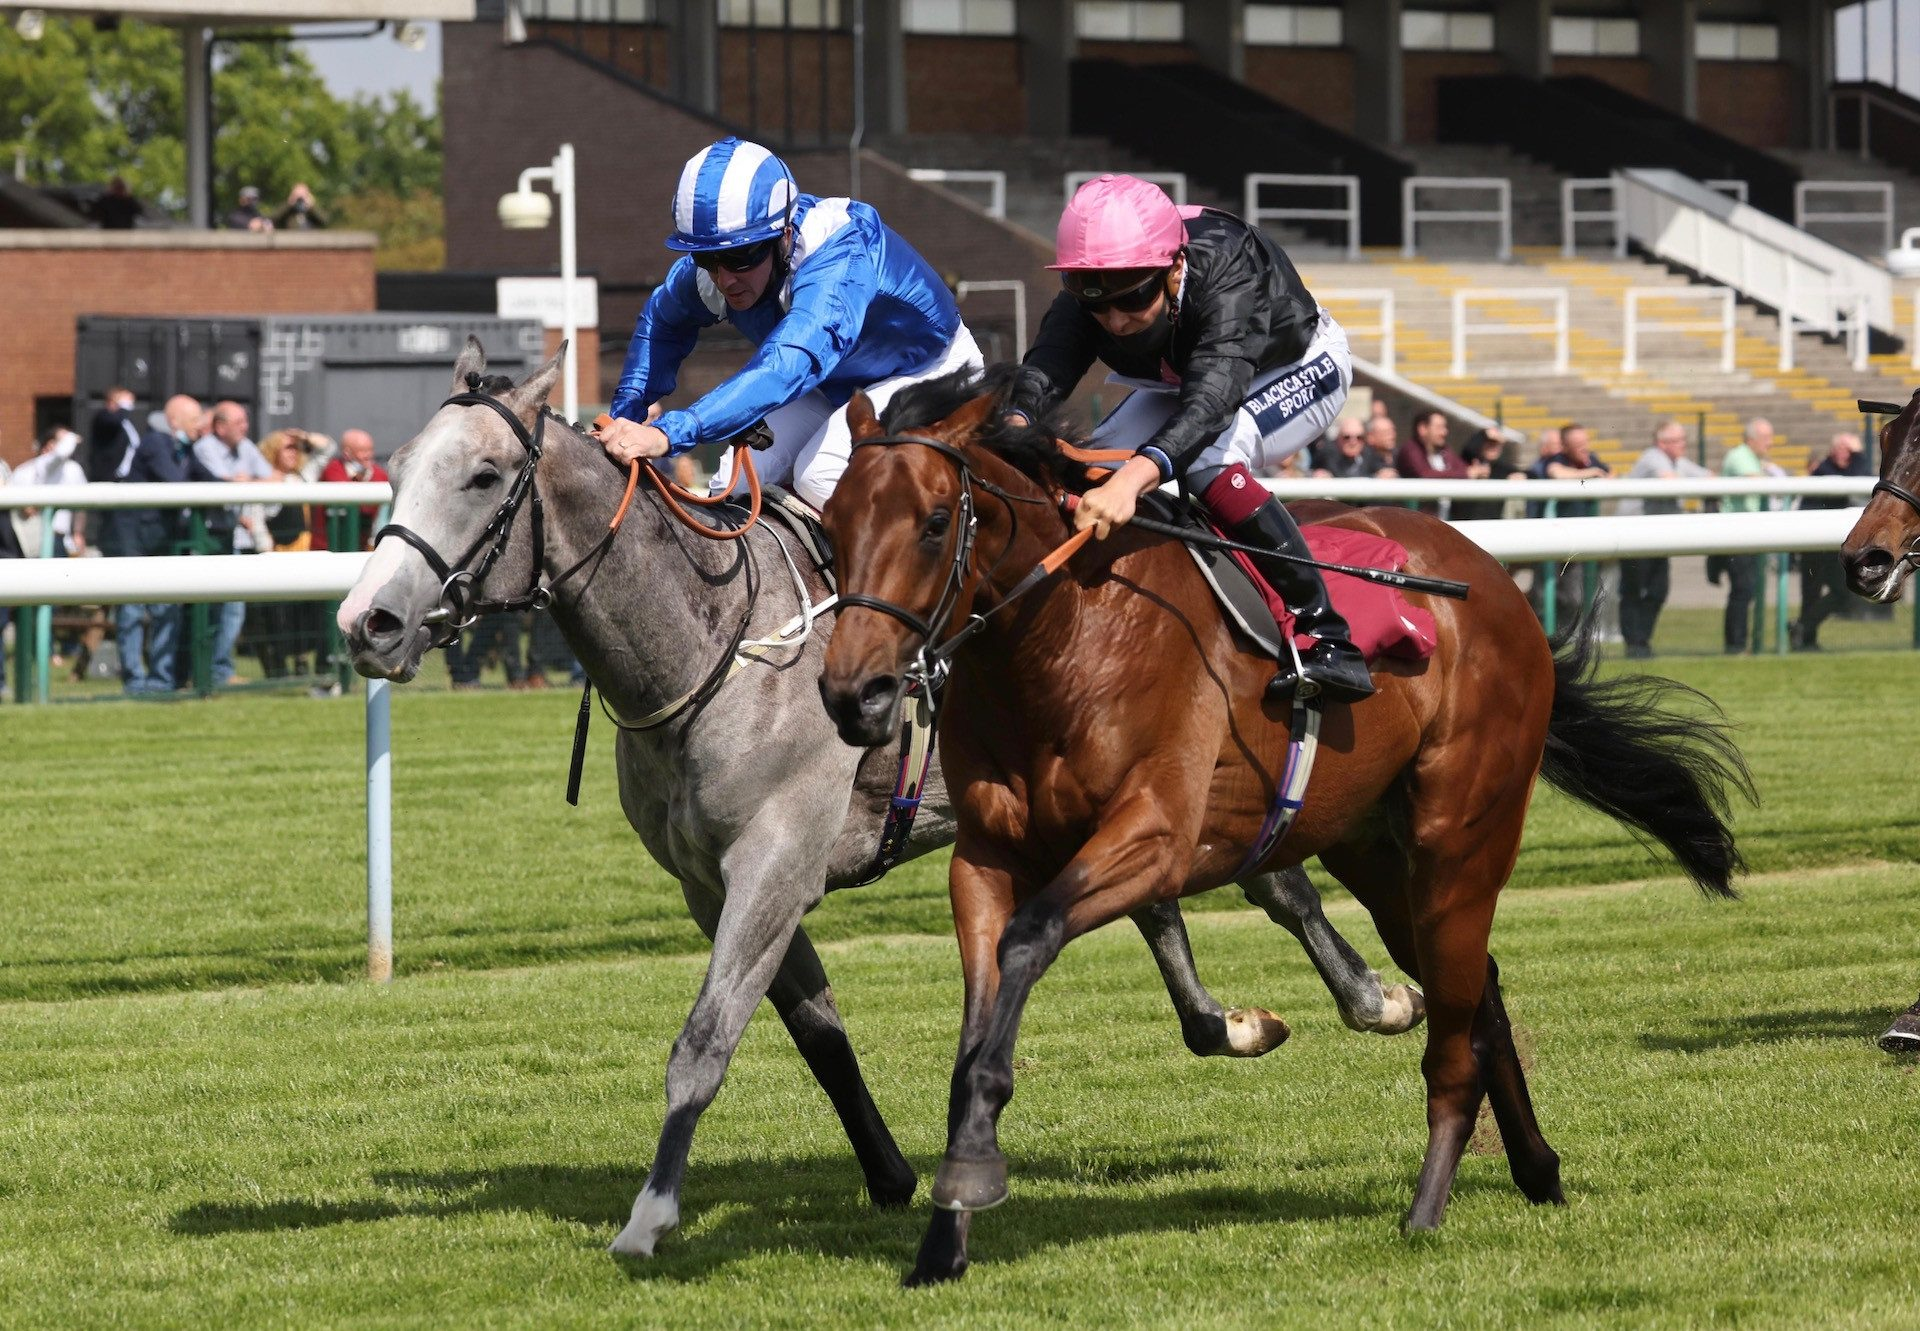 Raging (Holy Roman Emperor) Wins The Seven Sisters Novice Stakes At Haydock